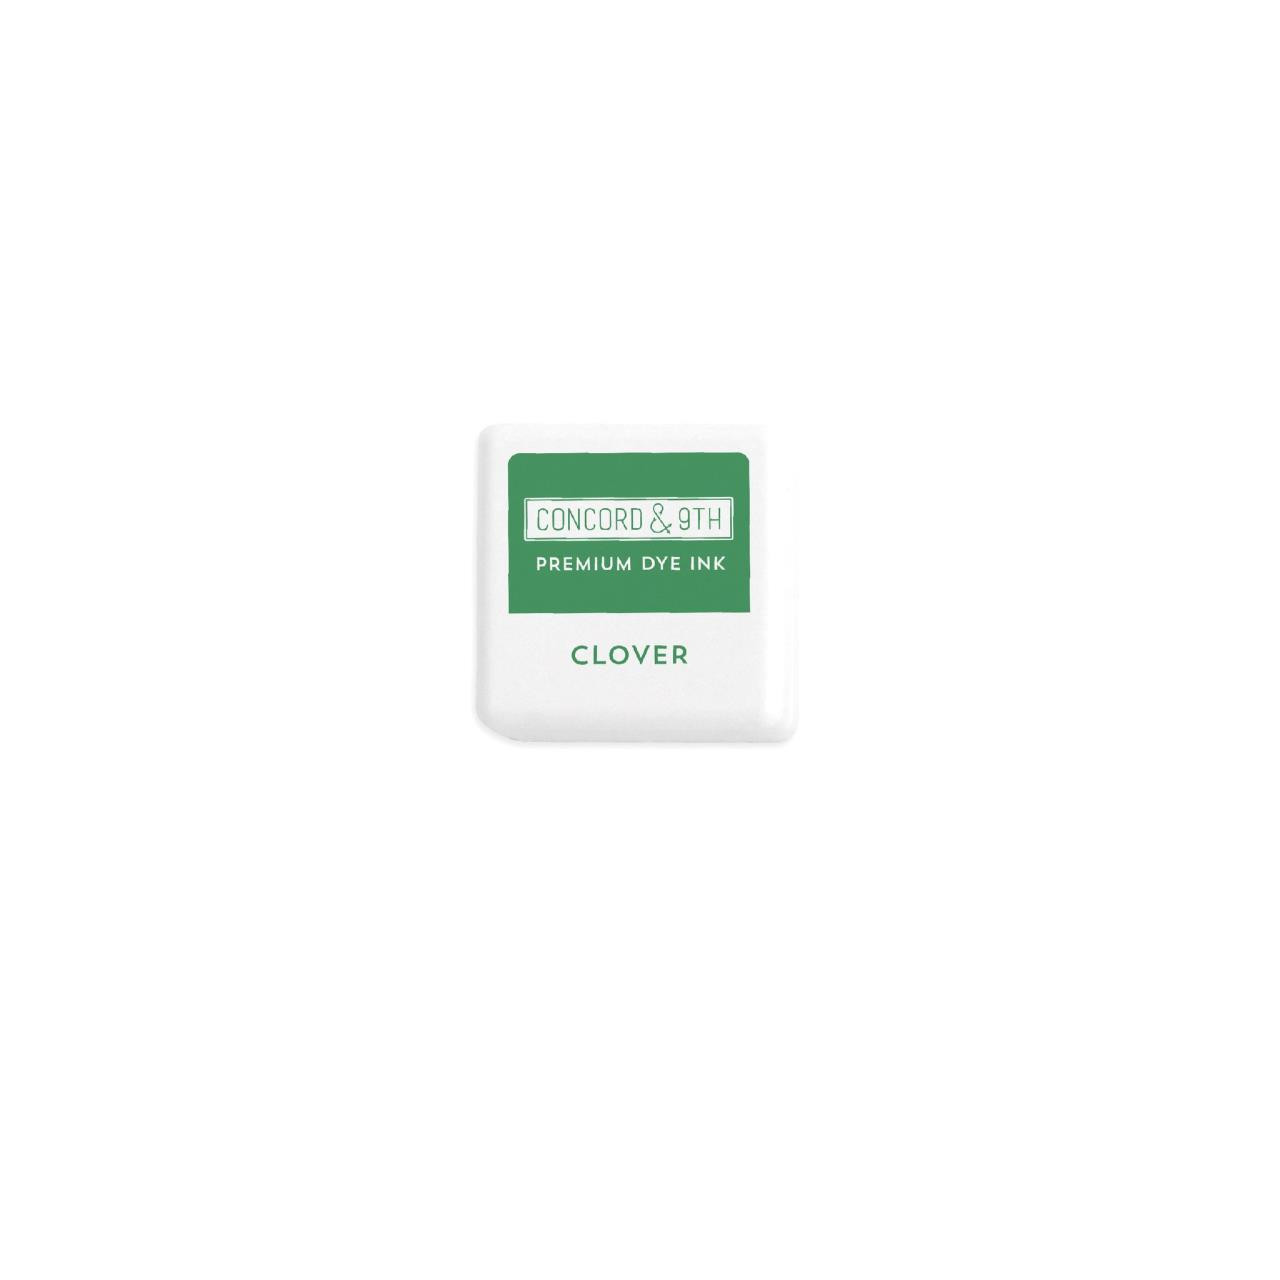 Clover, Concord & 9th Premium Dye Ink Cubes - 090222402232